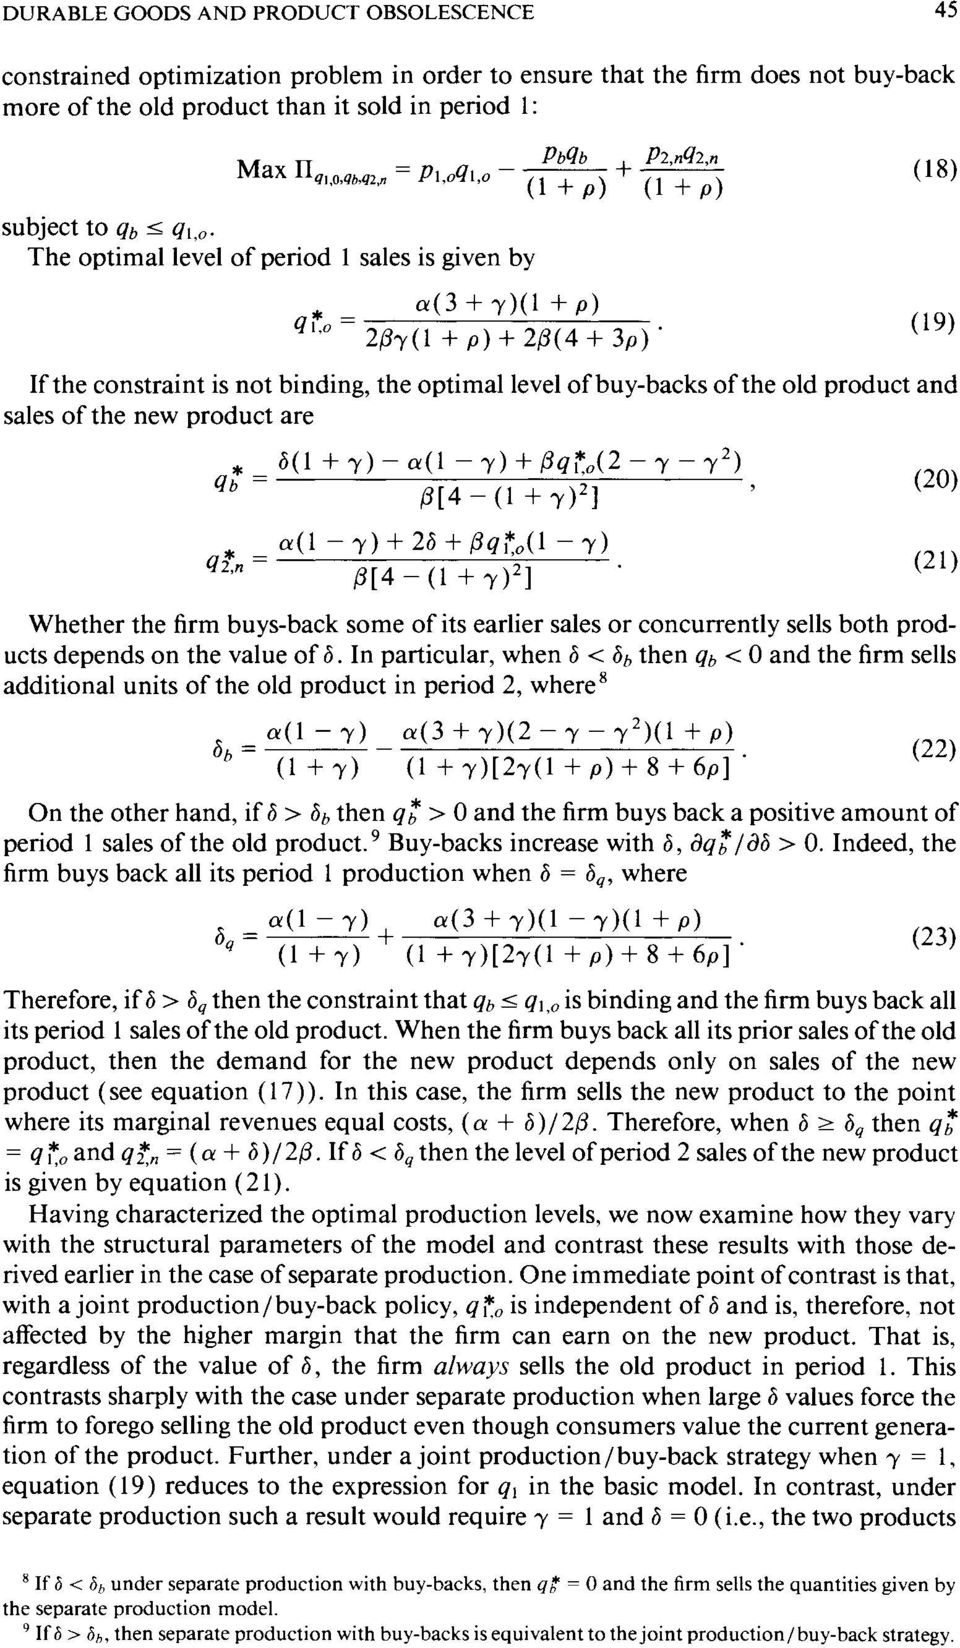 The optimal level of period 1 sales is given by *=^ a(3 + y)(1 + p) q,o 2/3,(1 + p)+ 2/5(4 +3p) (19) If the constraint is not binding, the optimal level of buy-backs of the old product and sales of